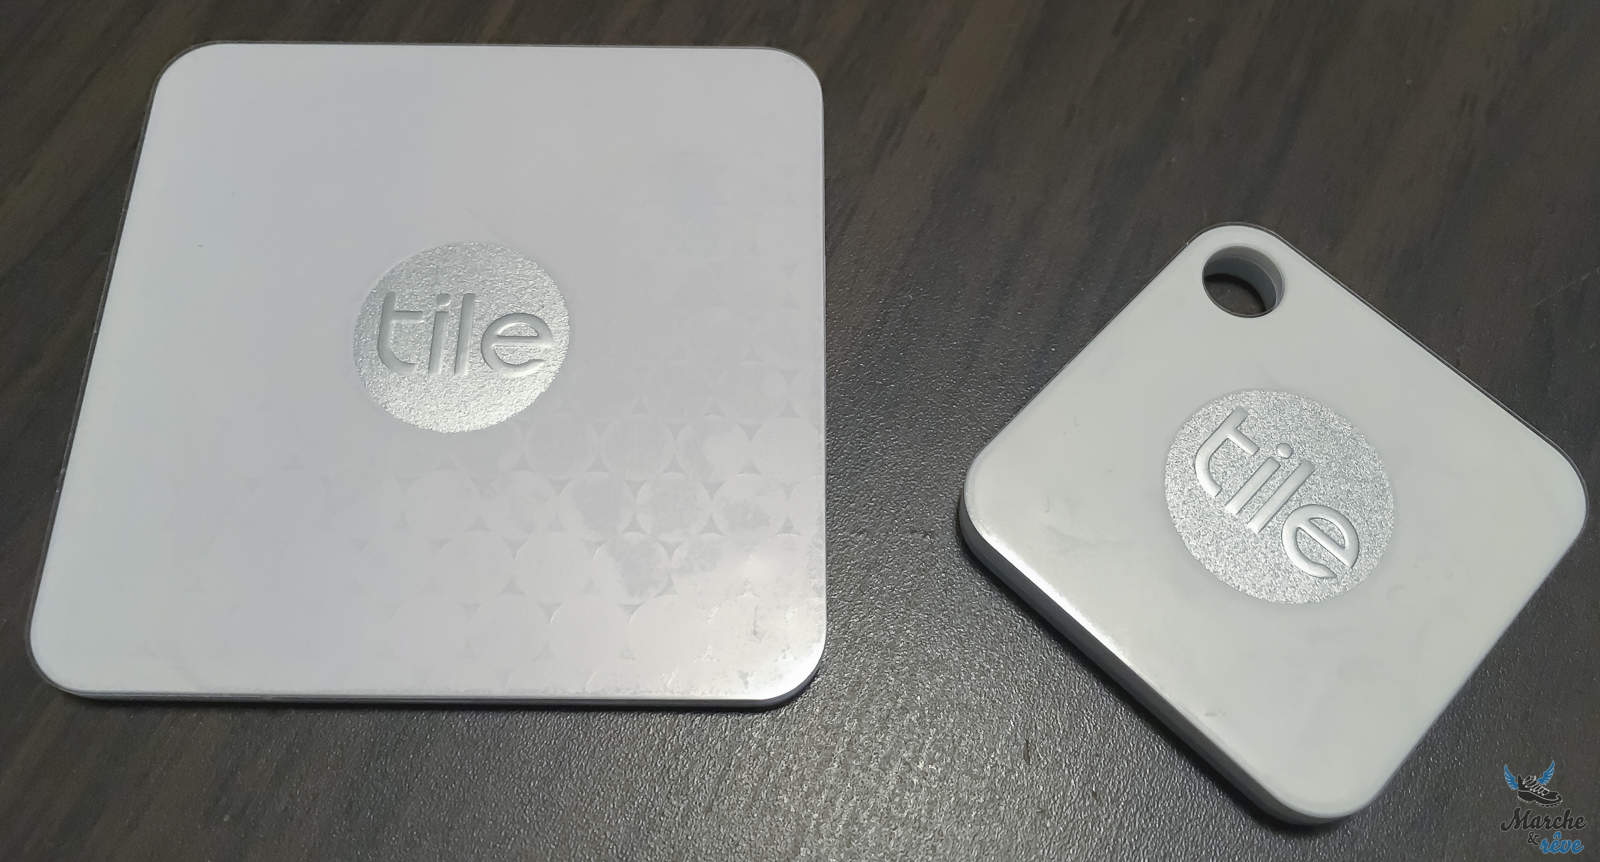 Tile slim et Tile Mate